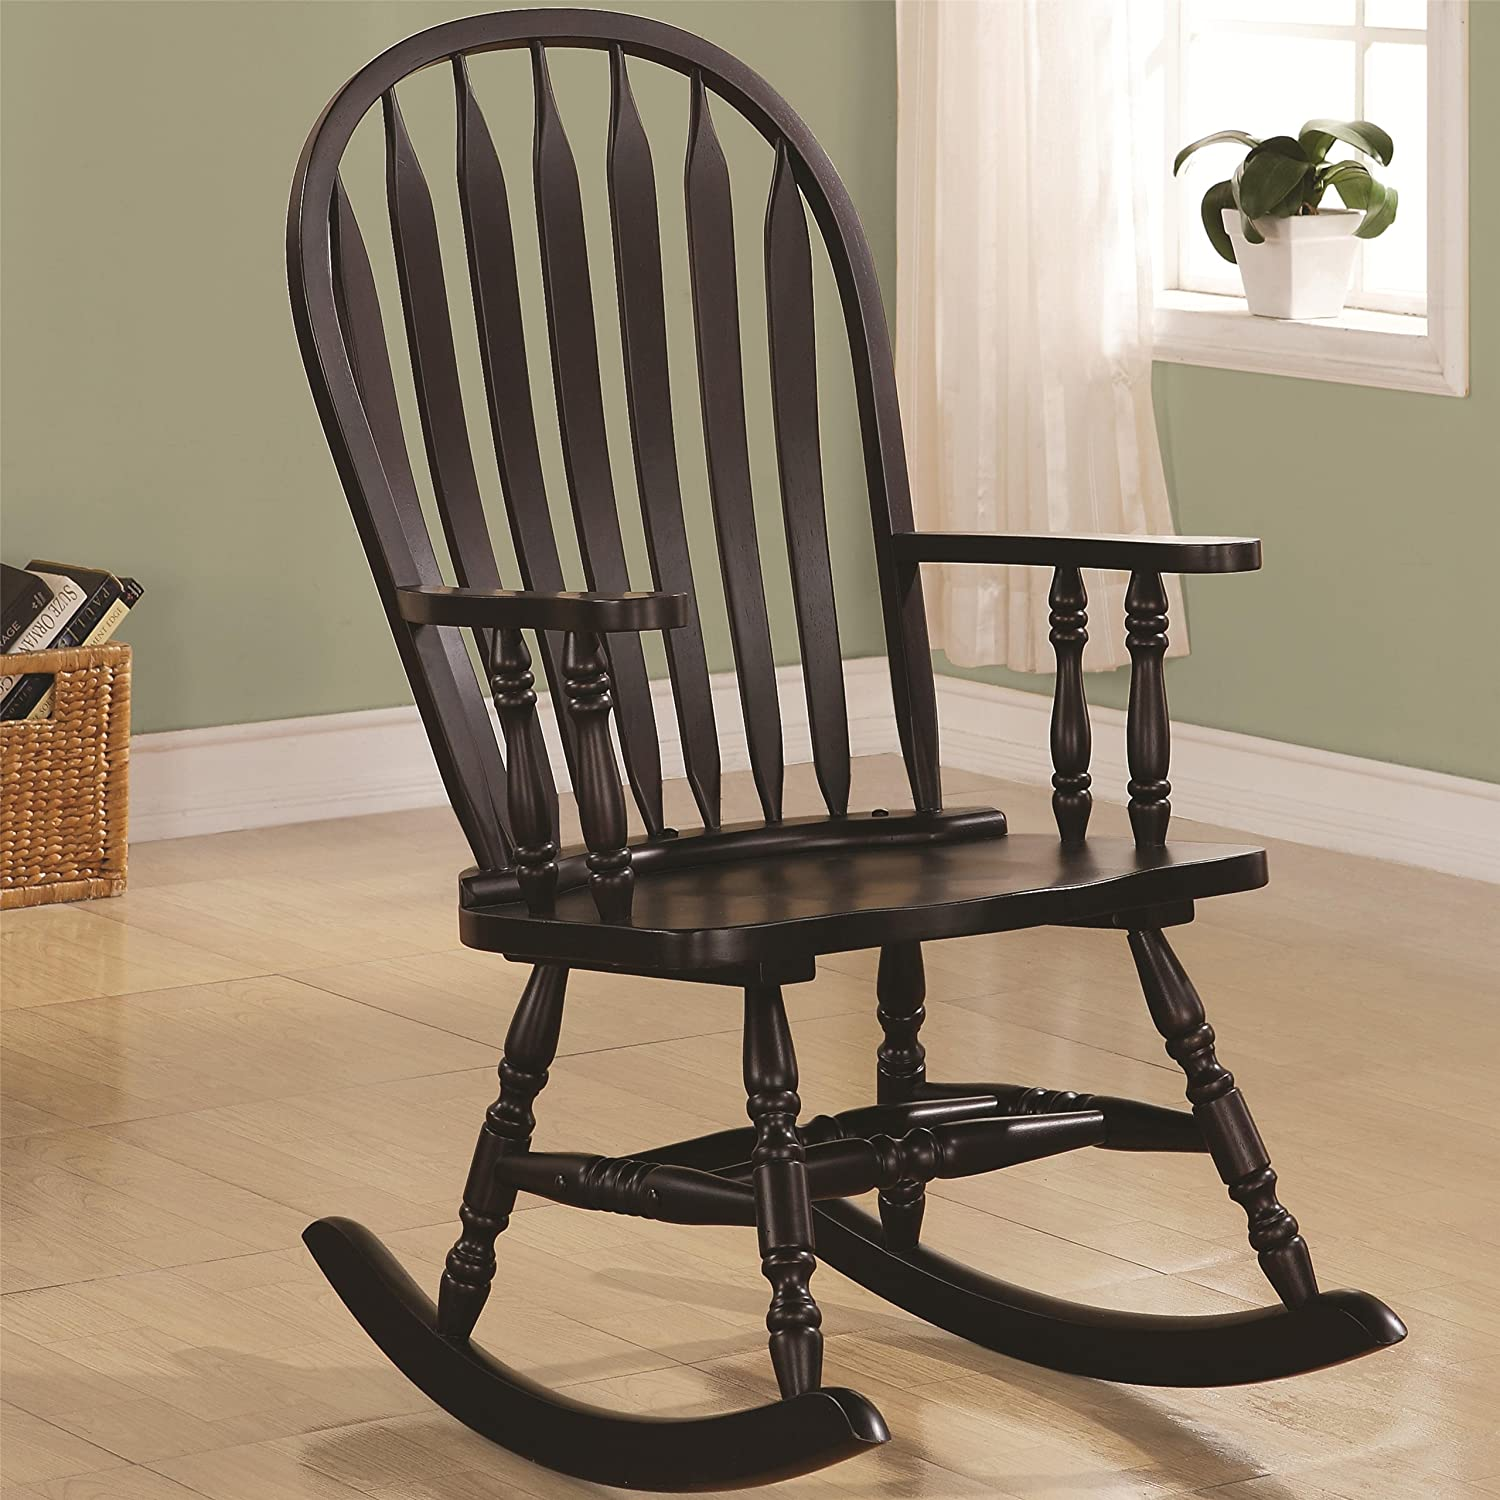 Amazon CAPPUCCINO ARROW WINDSOR BACK ROCKING CHAIR Kitchen